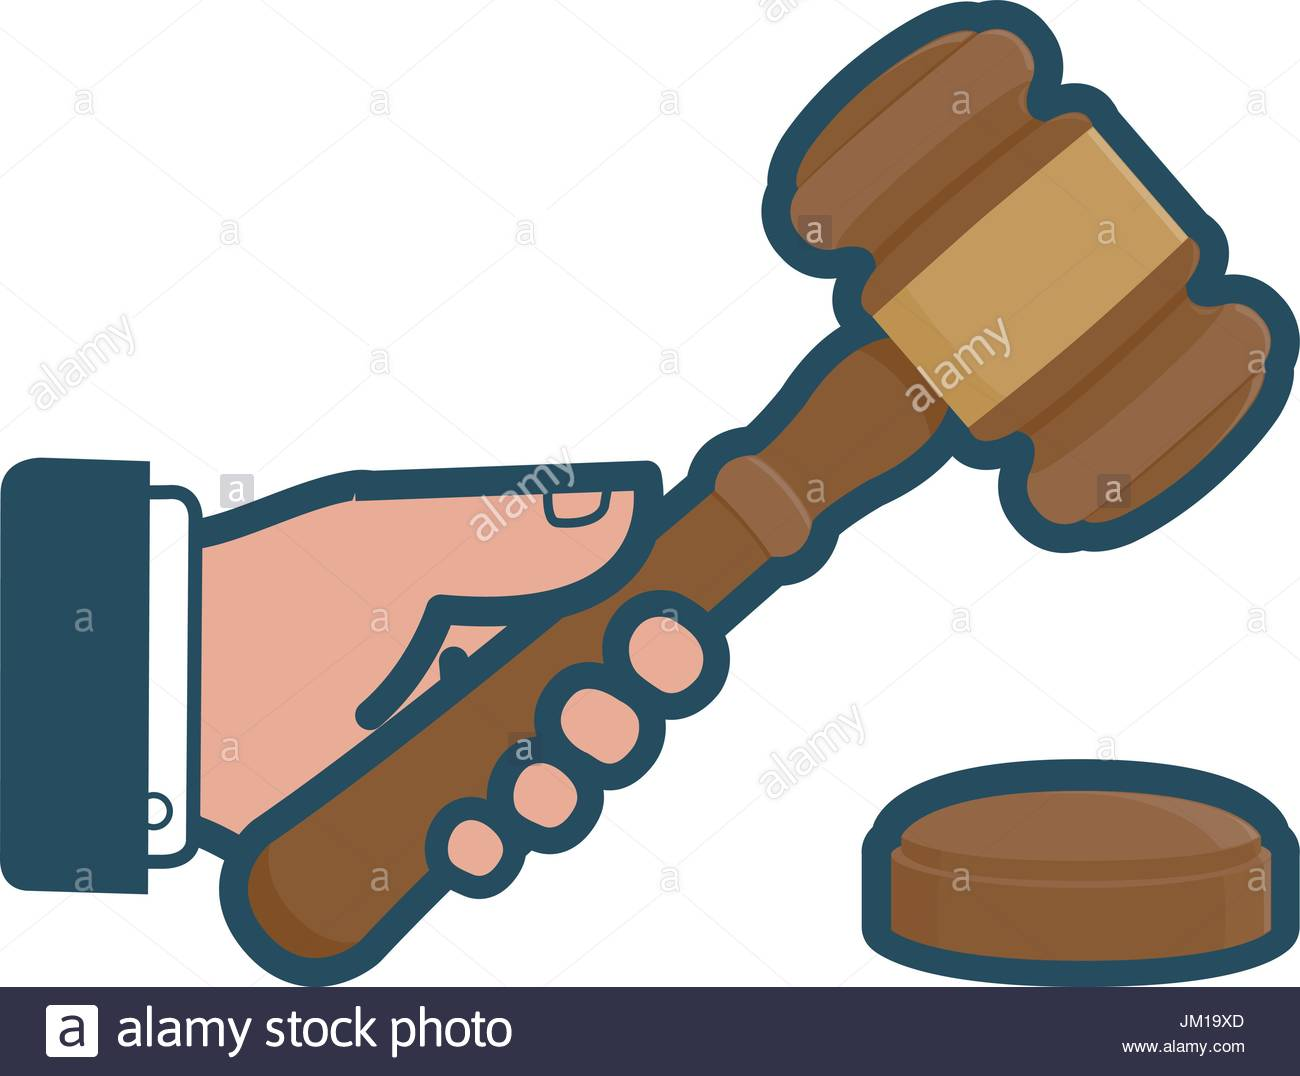 Free download best on. Gavel clipart judicial review